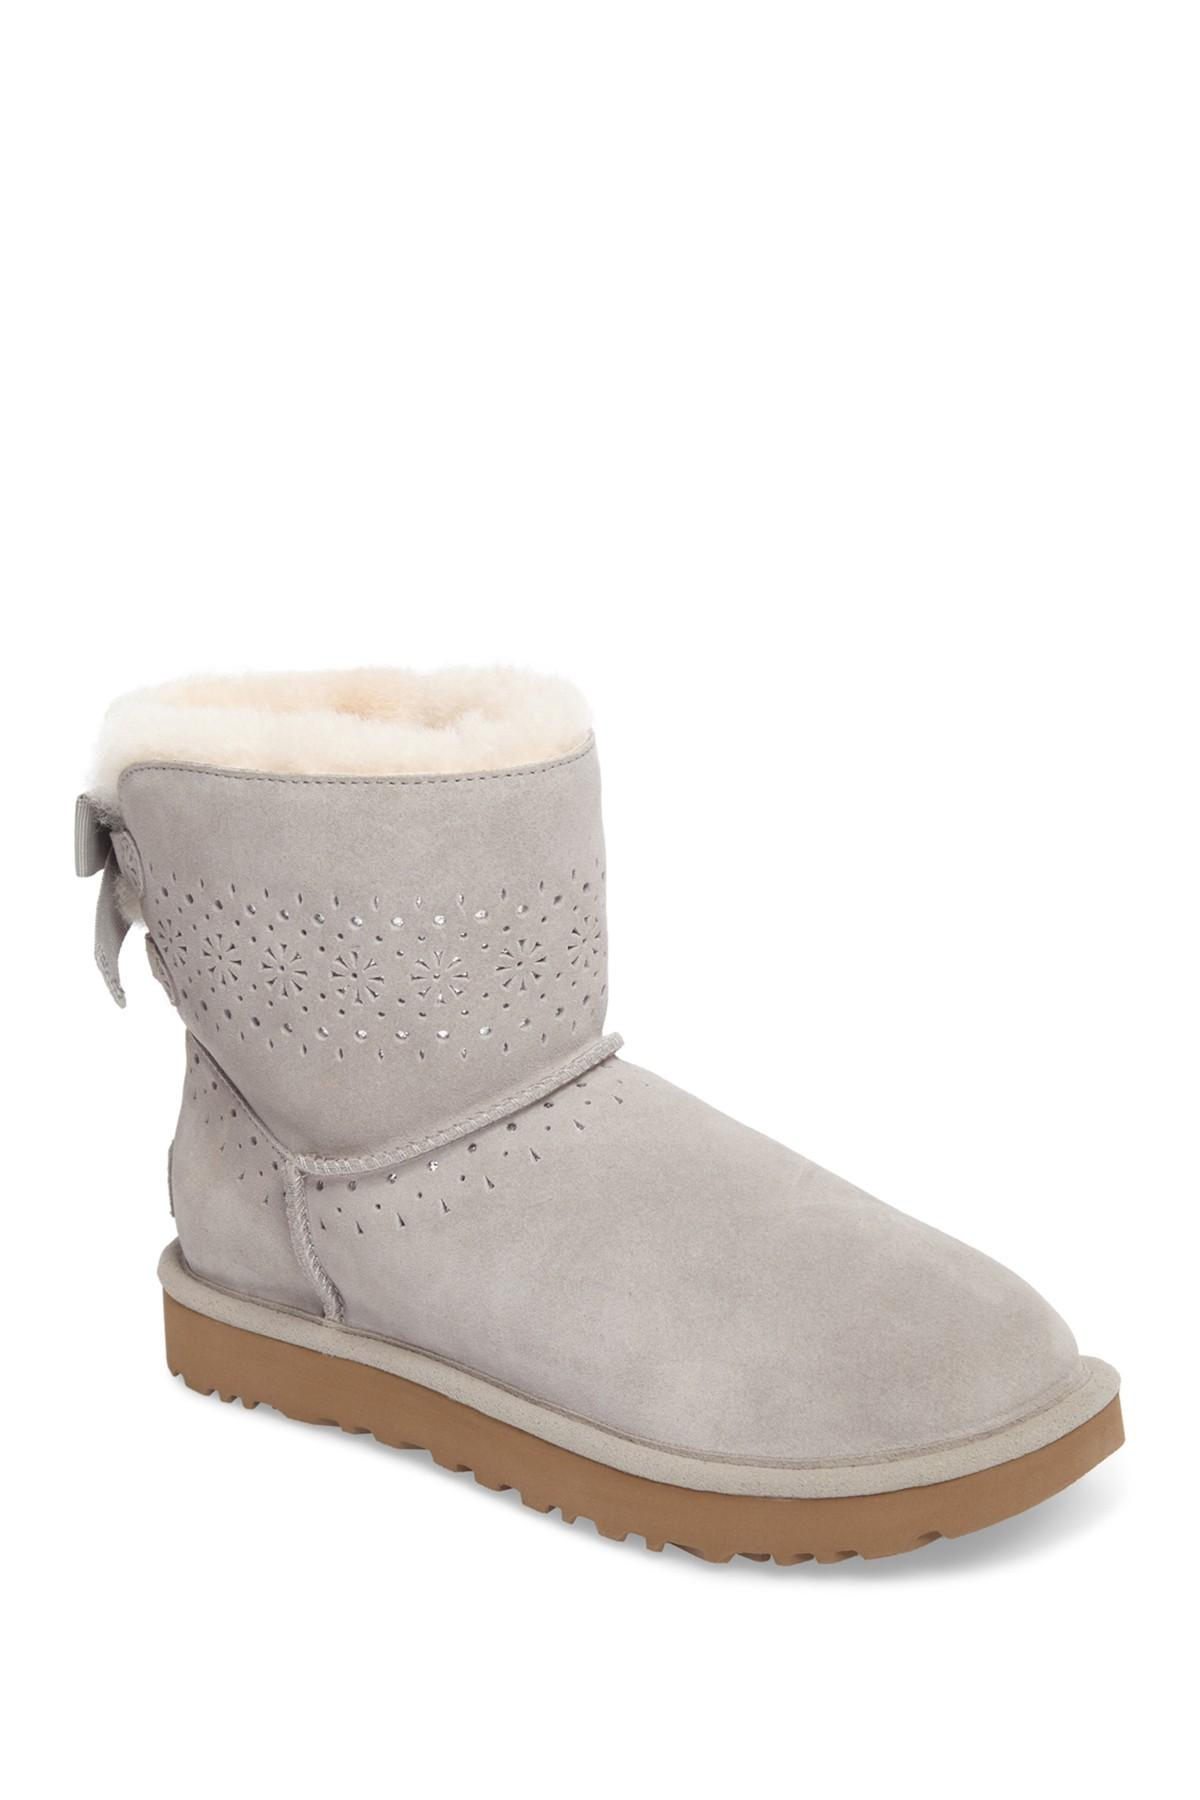 d9953bb0ae7 Lyst - UGG Dae Sunshine Genuine Shearling Lined Boot